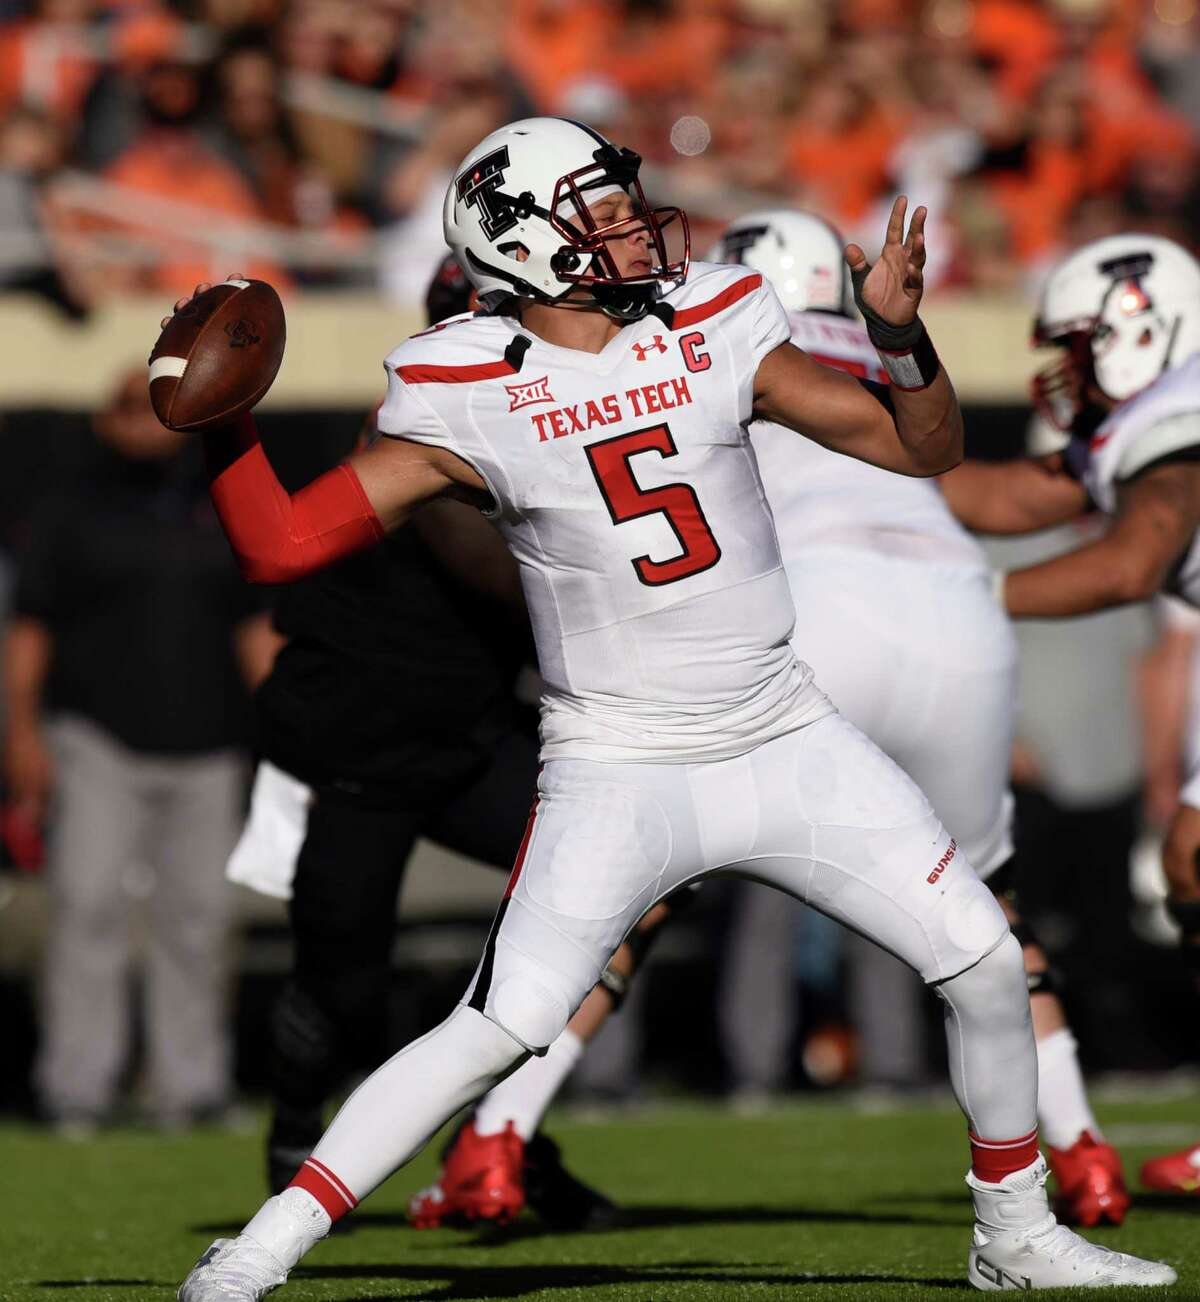 Texas Tech quarterback Partick Mahomes II throws a pass during the first half of an NCAA college football game in Stillwater, Okla., Saturday, Nov. 12, 2016. Mahomes II threw for 344 yards in the 44-45 loss to Oklahoma State. (AP Photo/Brody Schmidt)